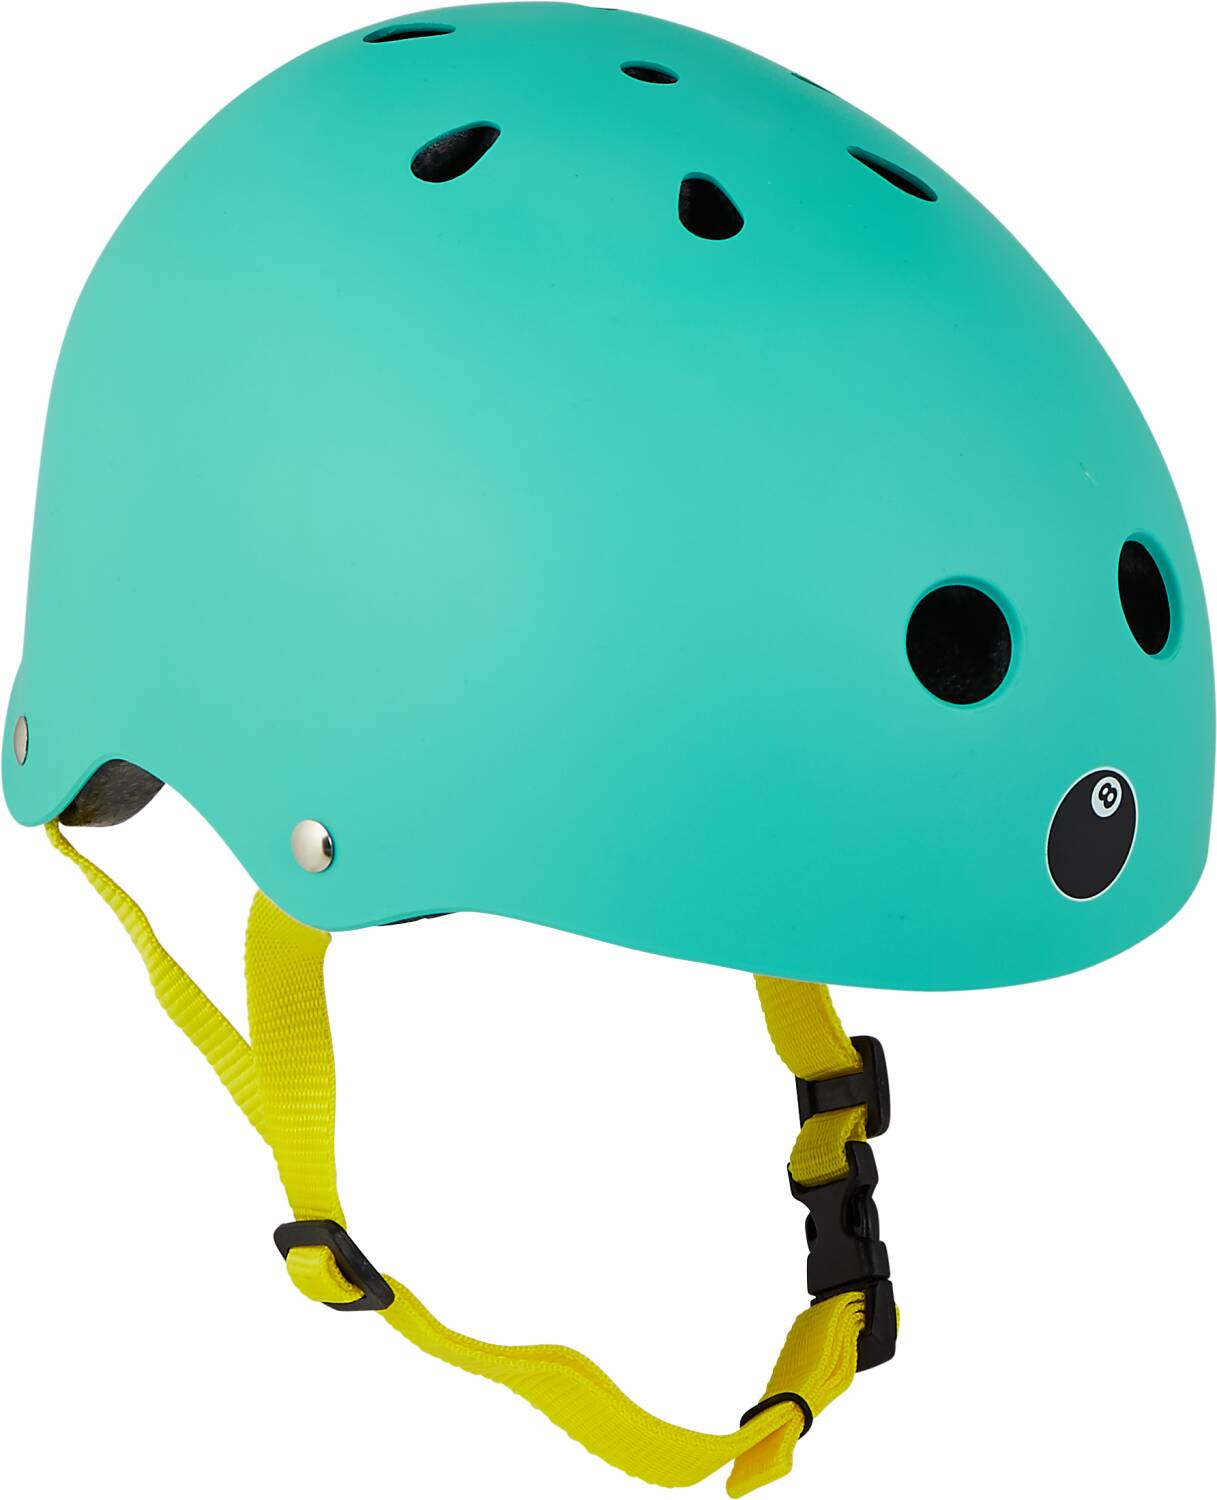 Eight Ball Skate Helmet - Teal